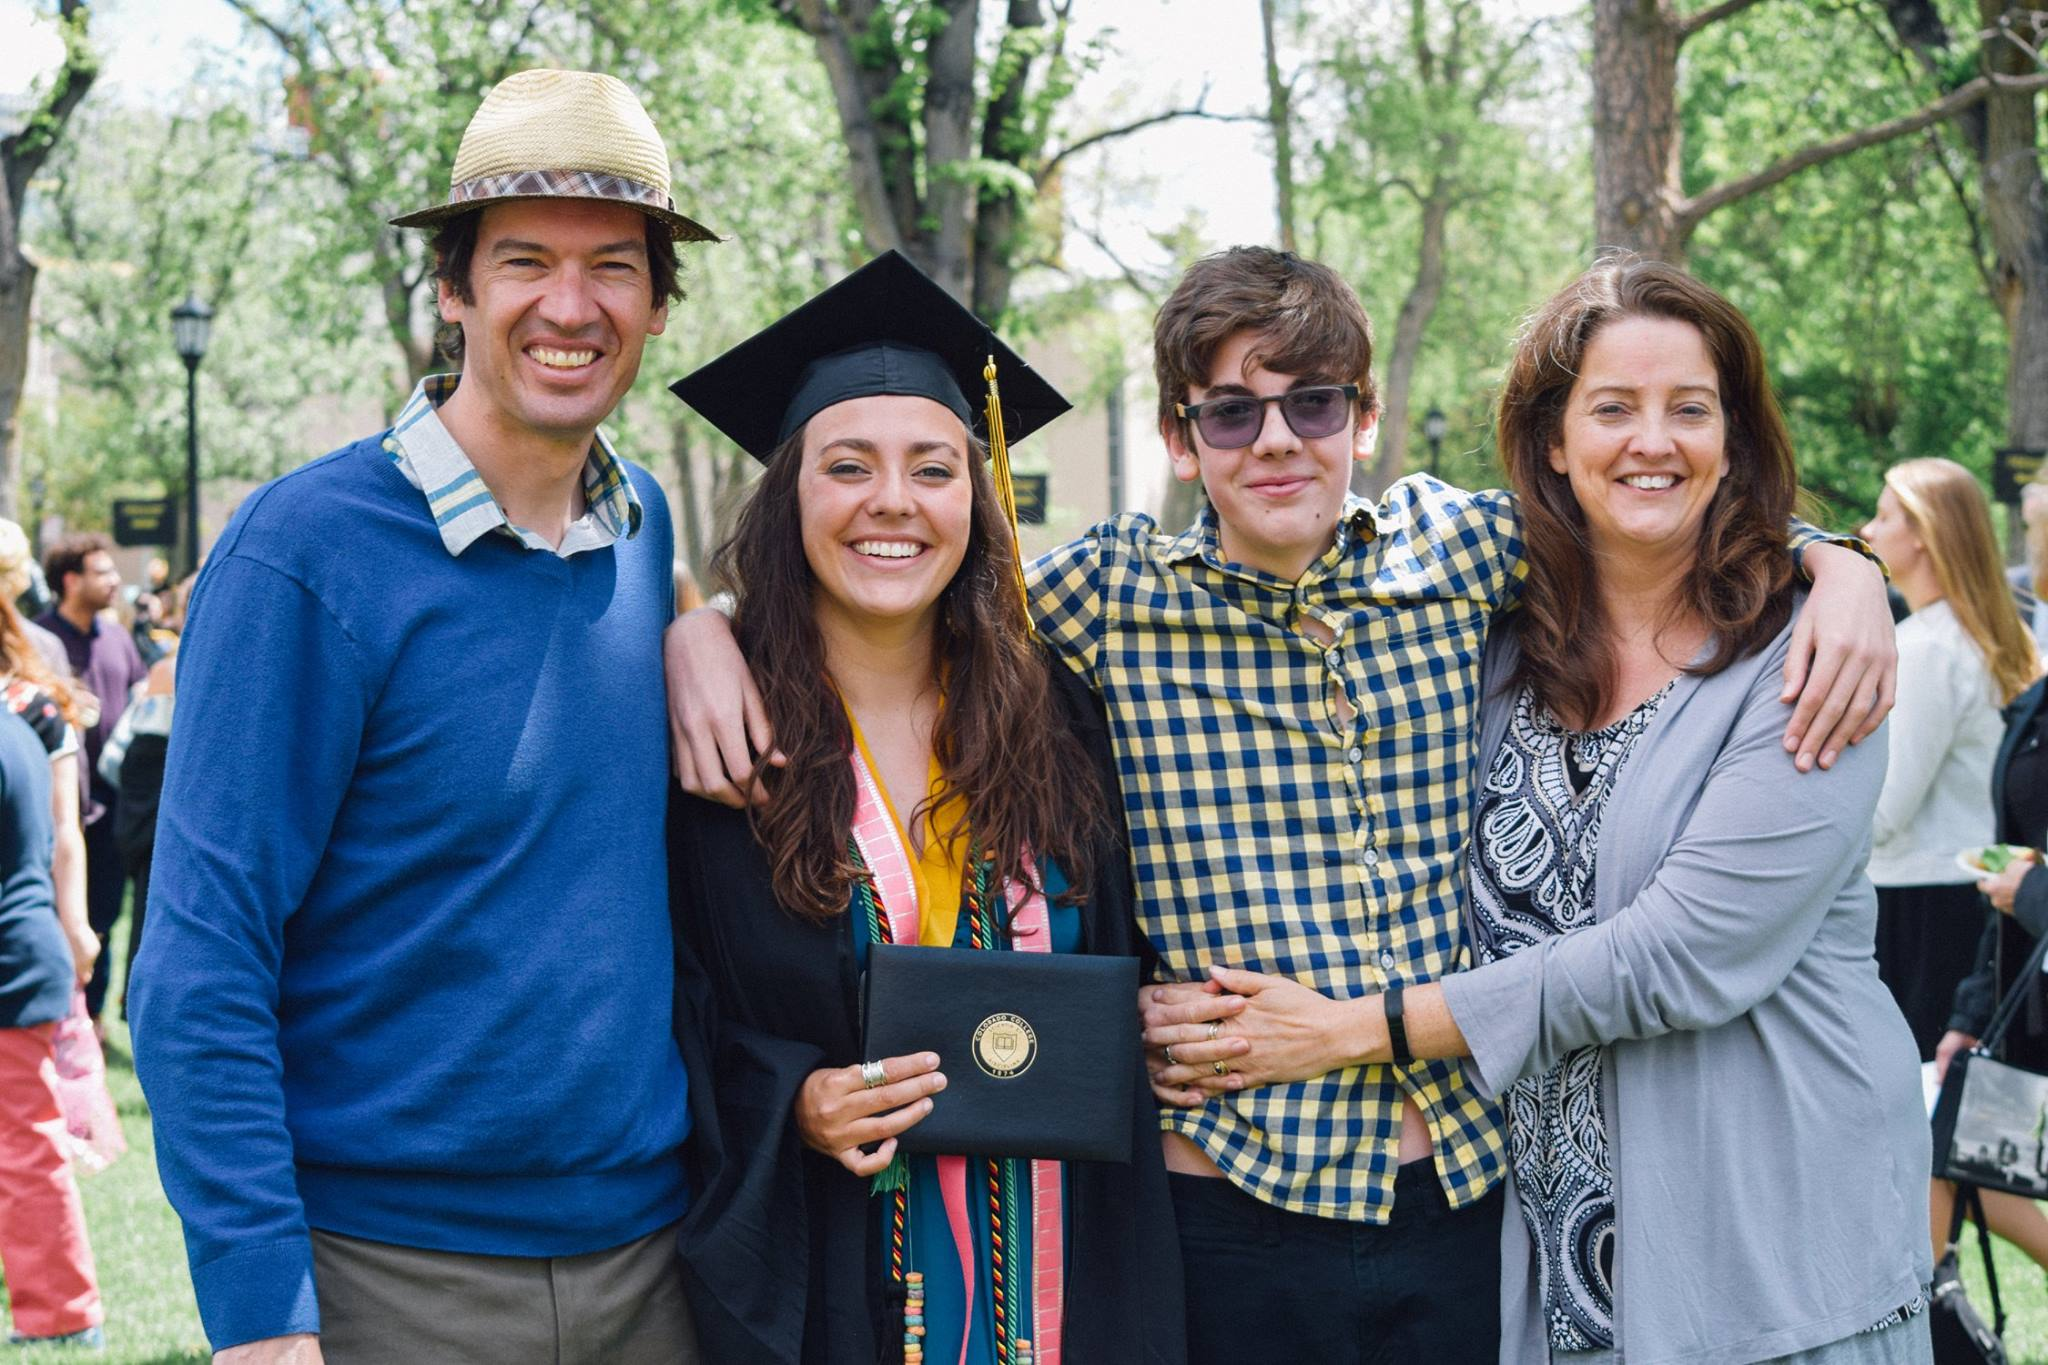 Sophie, my oldest, graduating from college. And there's the son who doesn't yet know what he's in for!